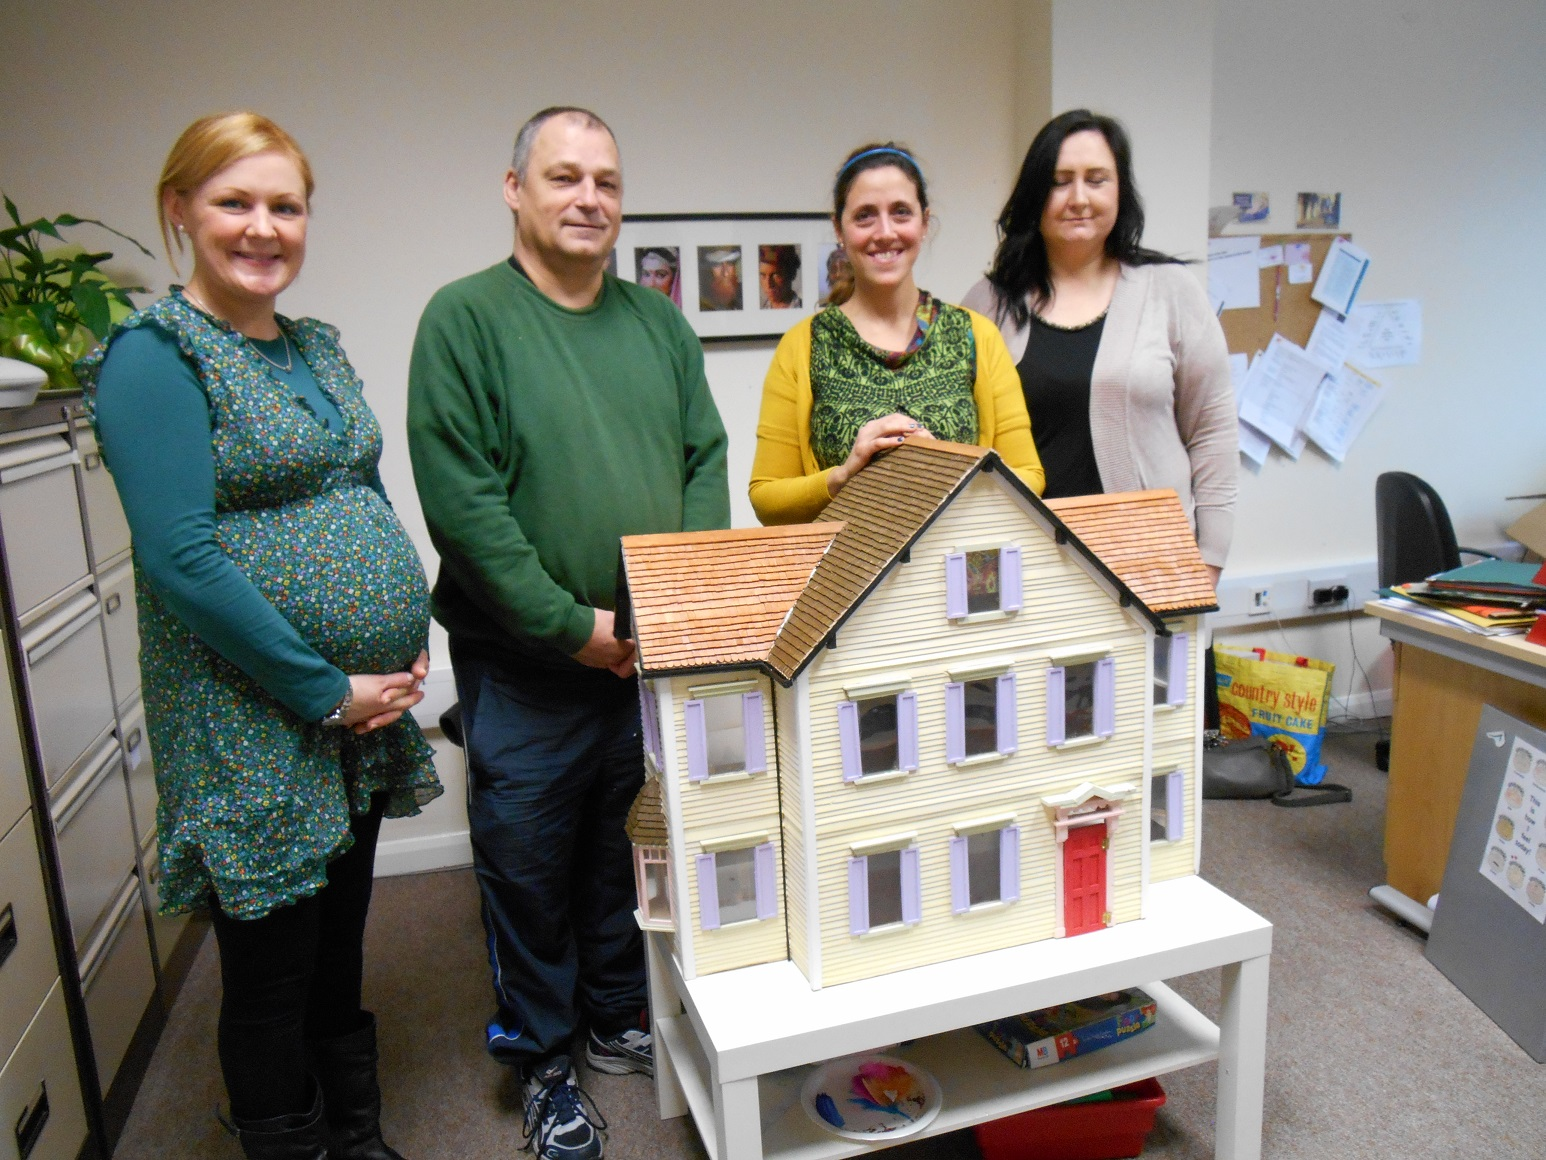 cms-presents-dolls-house-to-kildare-youth-services-naas – ChangeX Blog